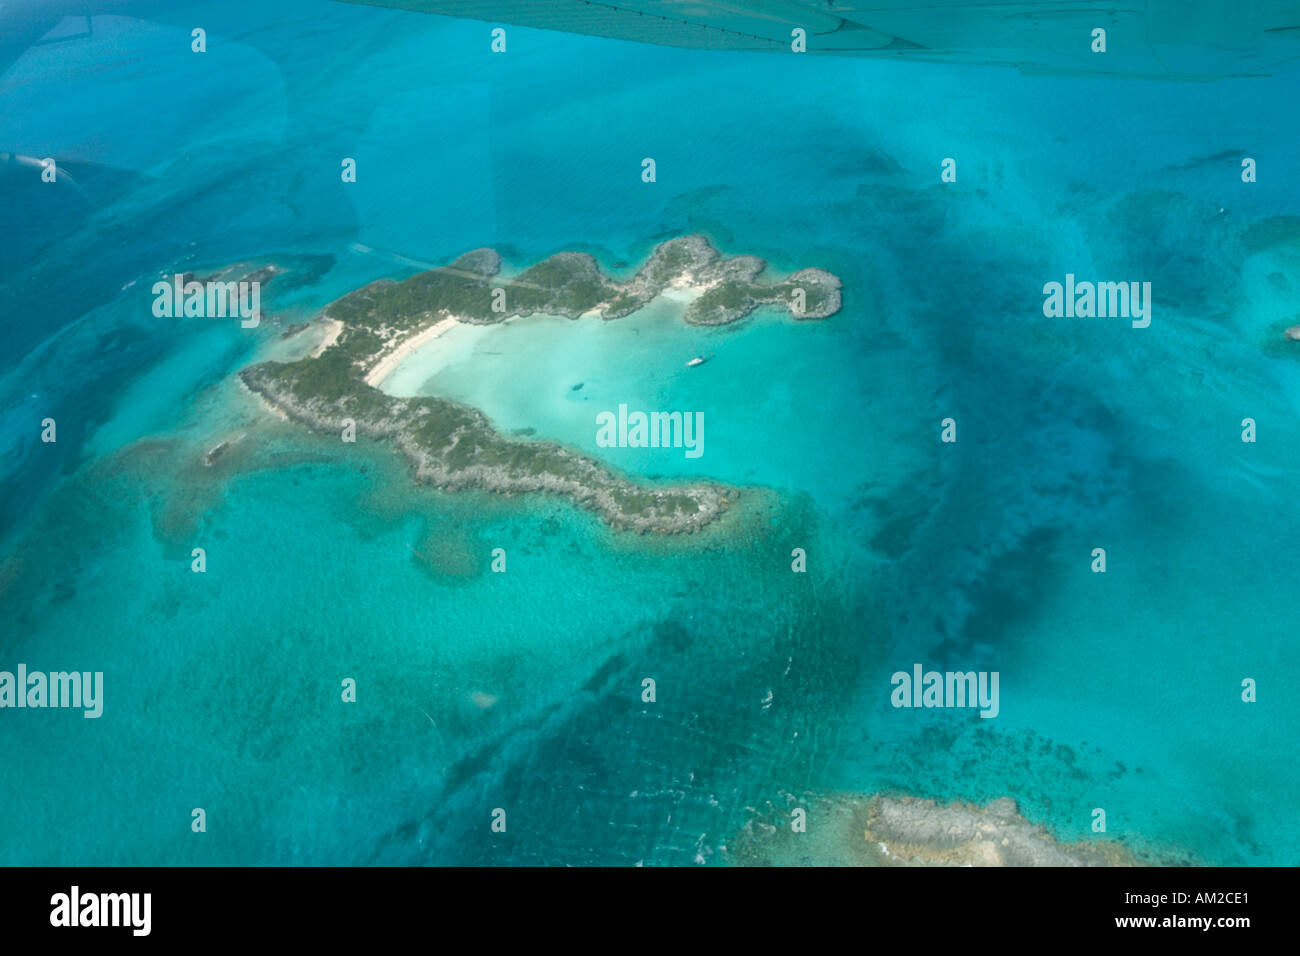 Aerial shot of the Northern Exumas from a private plane, Bahamas, Caribbean - Stock Image